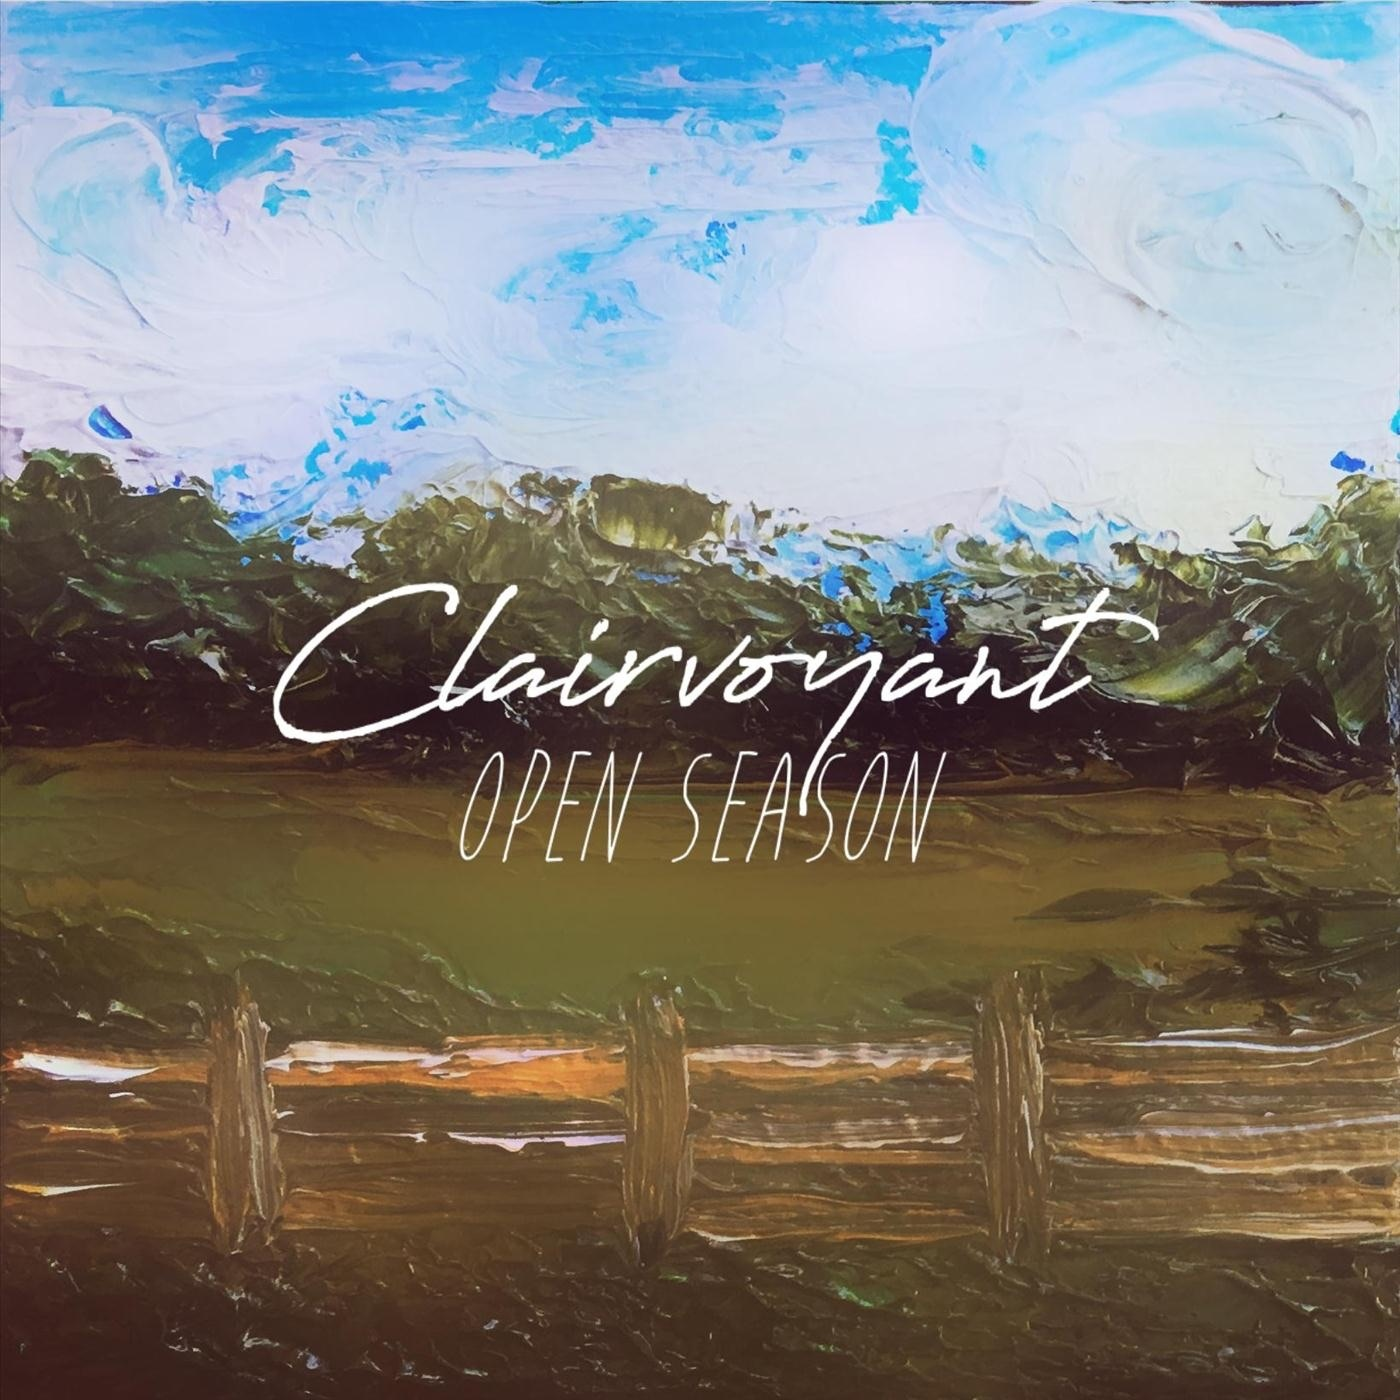 Clairvoyant - Open Season [Single] (2018)